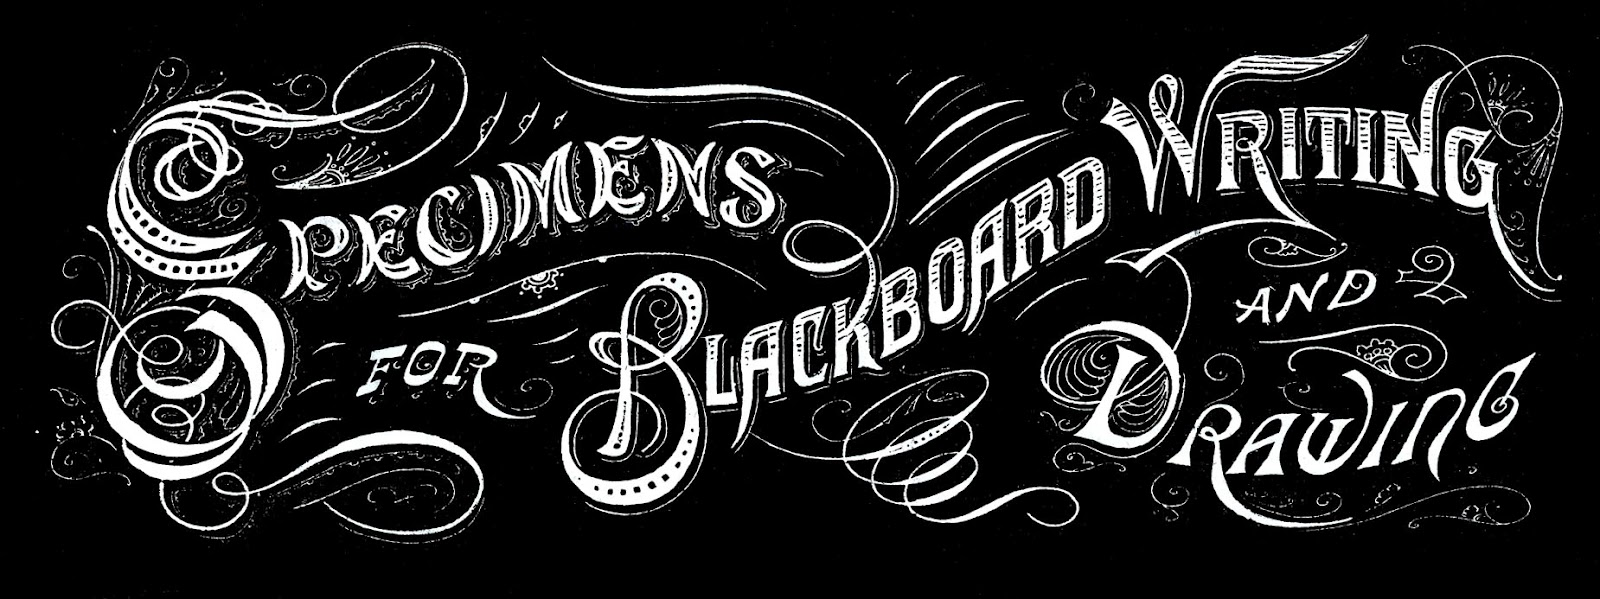 1000 images about letters on pinterest lettering Chalkboard typography